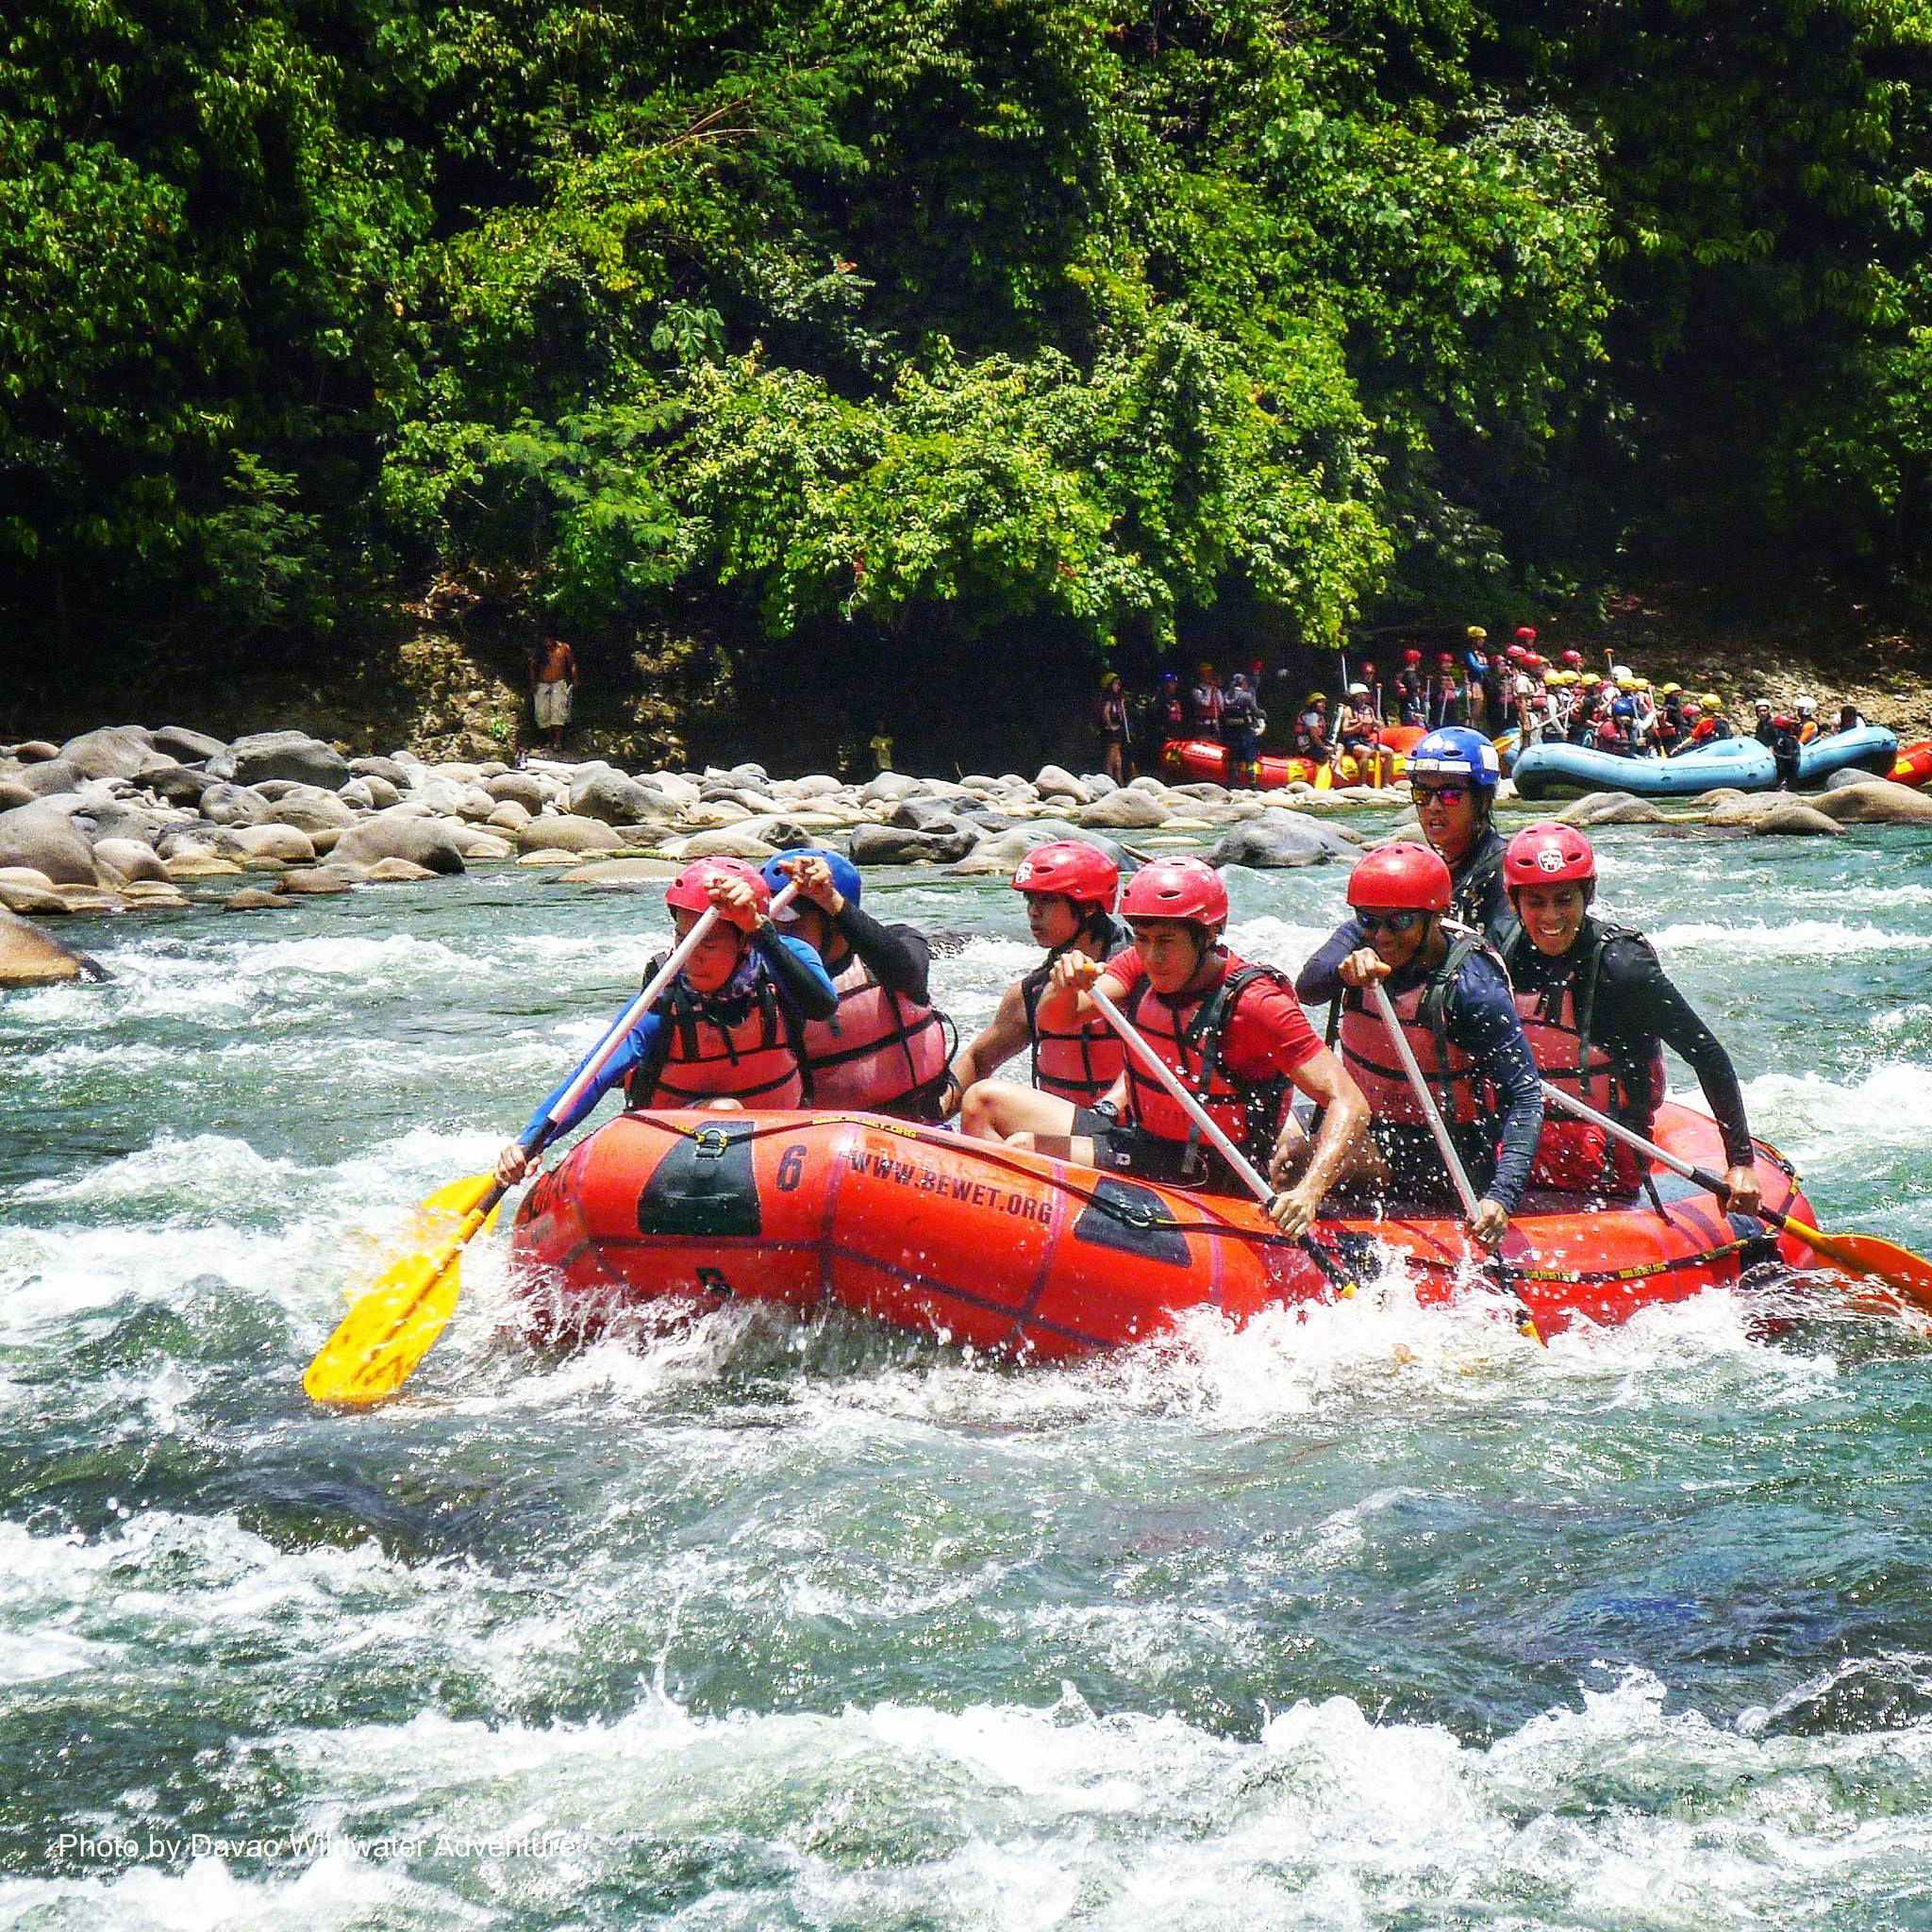 People going to the strong currents during a wildwater rafting experience in Davao